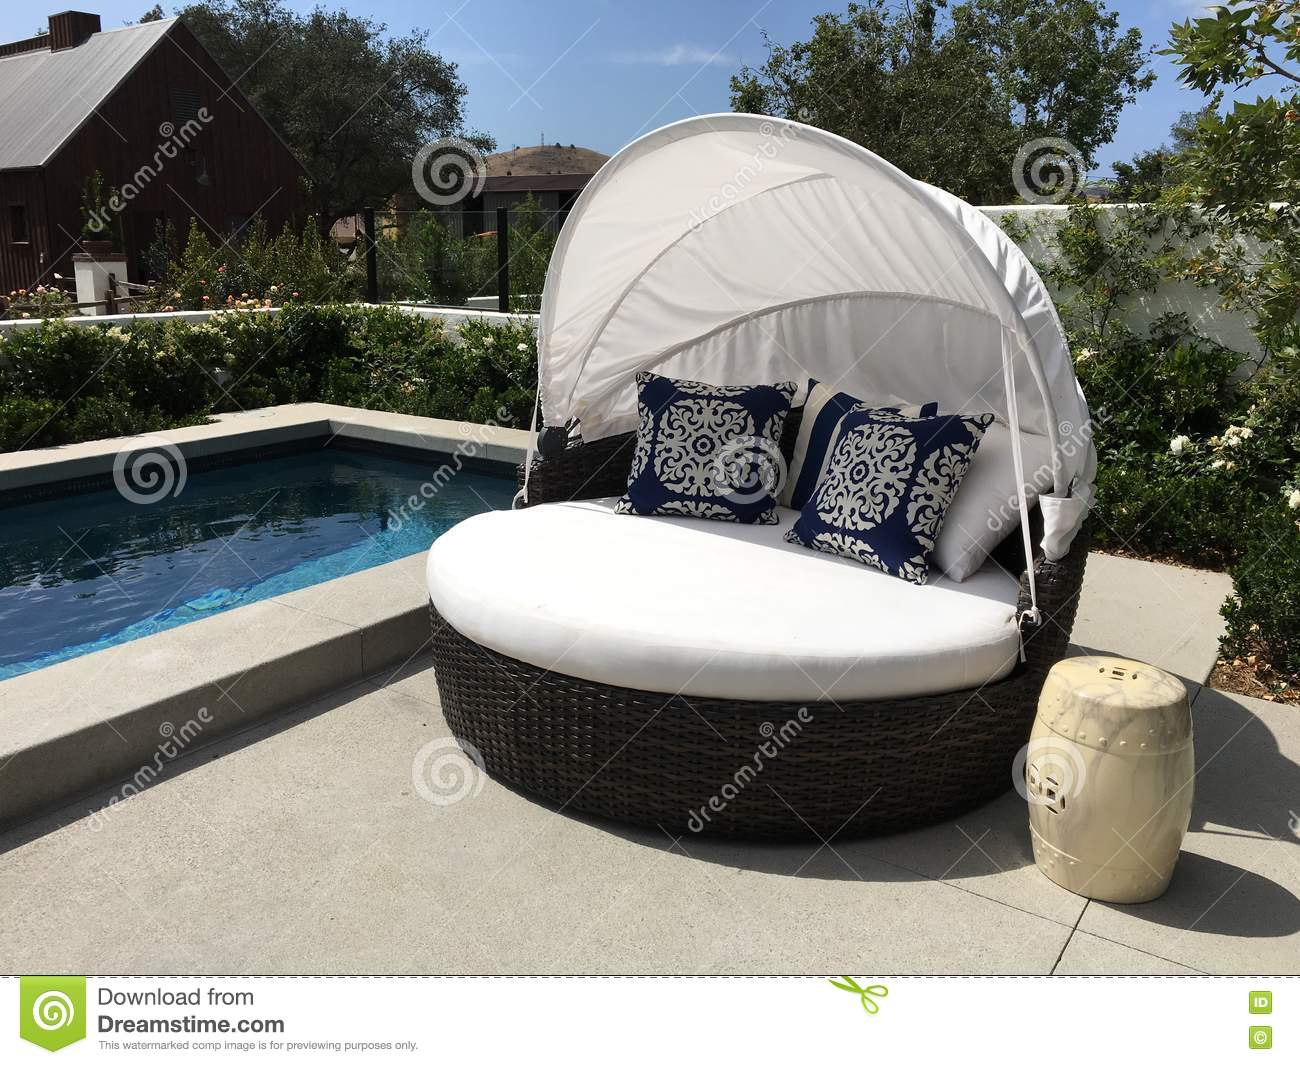 Attirant Download Beautiful Outdoor Patio Pool And Cabana Stock Photo   Image Of  Above, Couch: